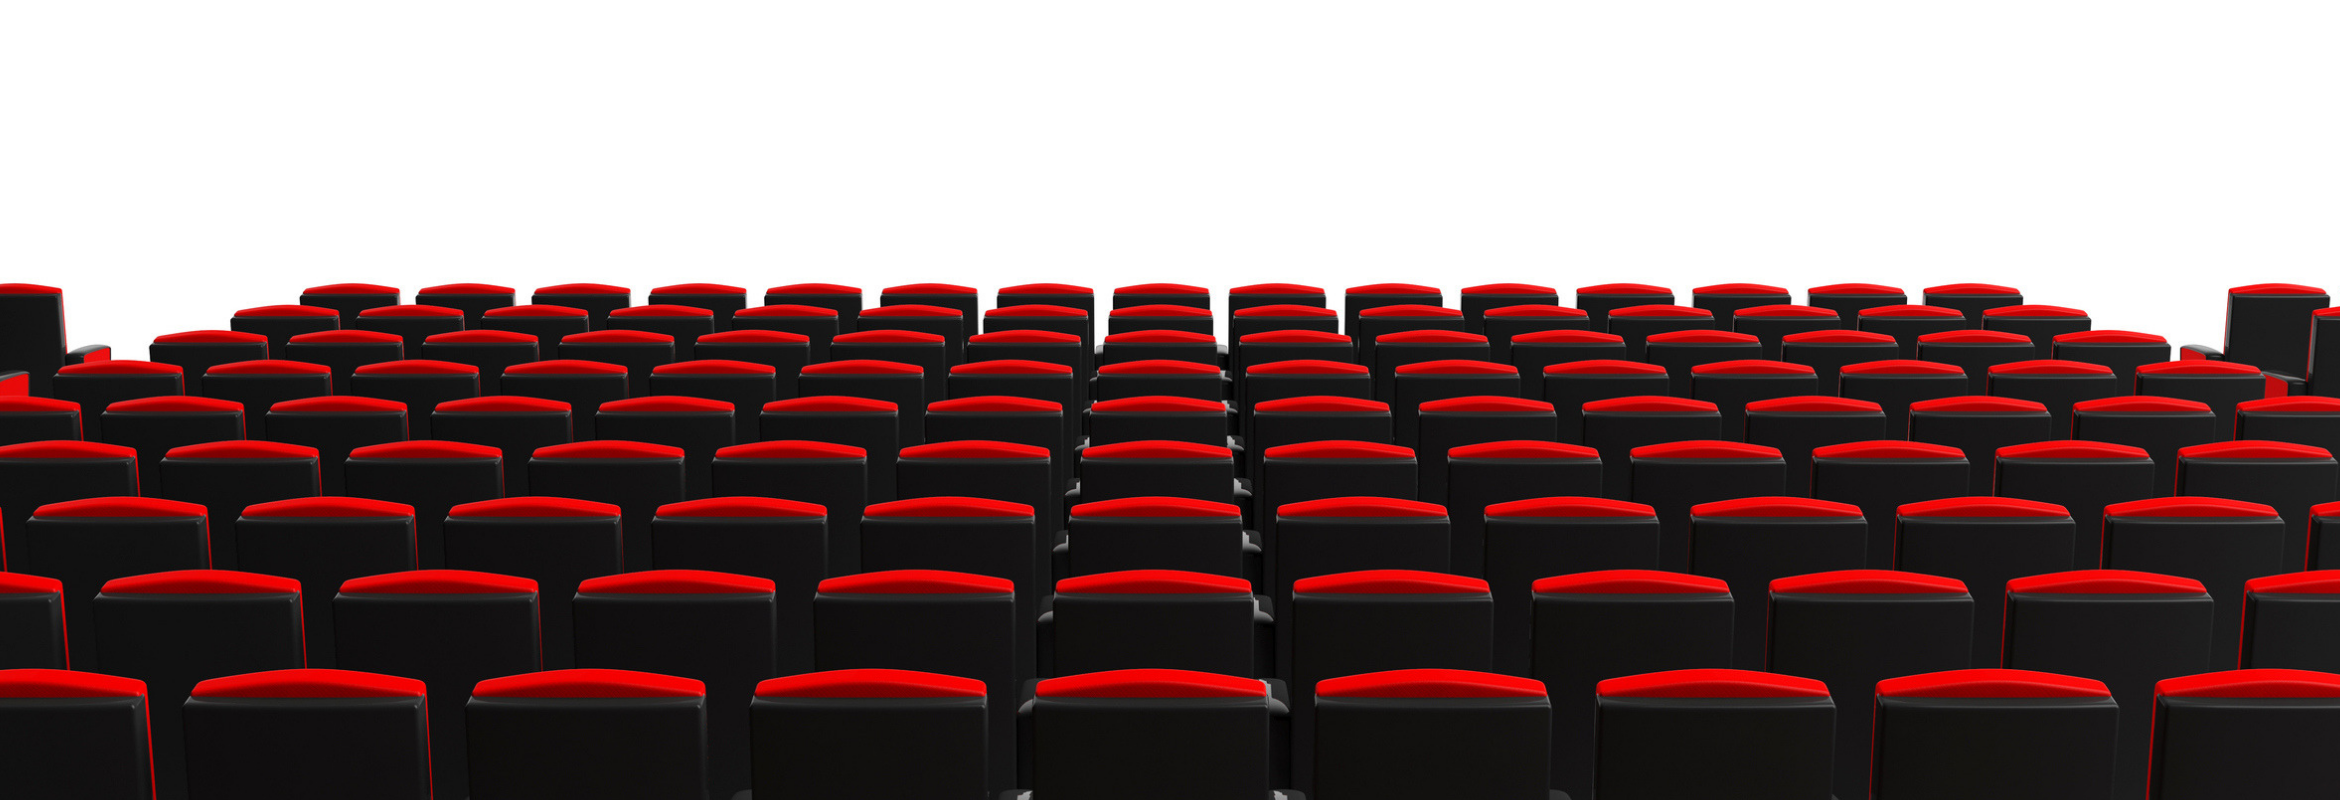 An image of movie theater seats.